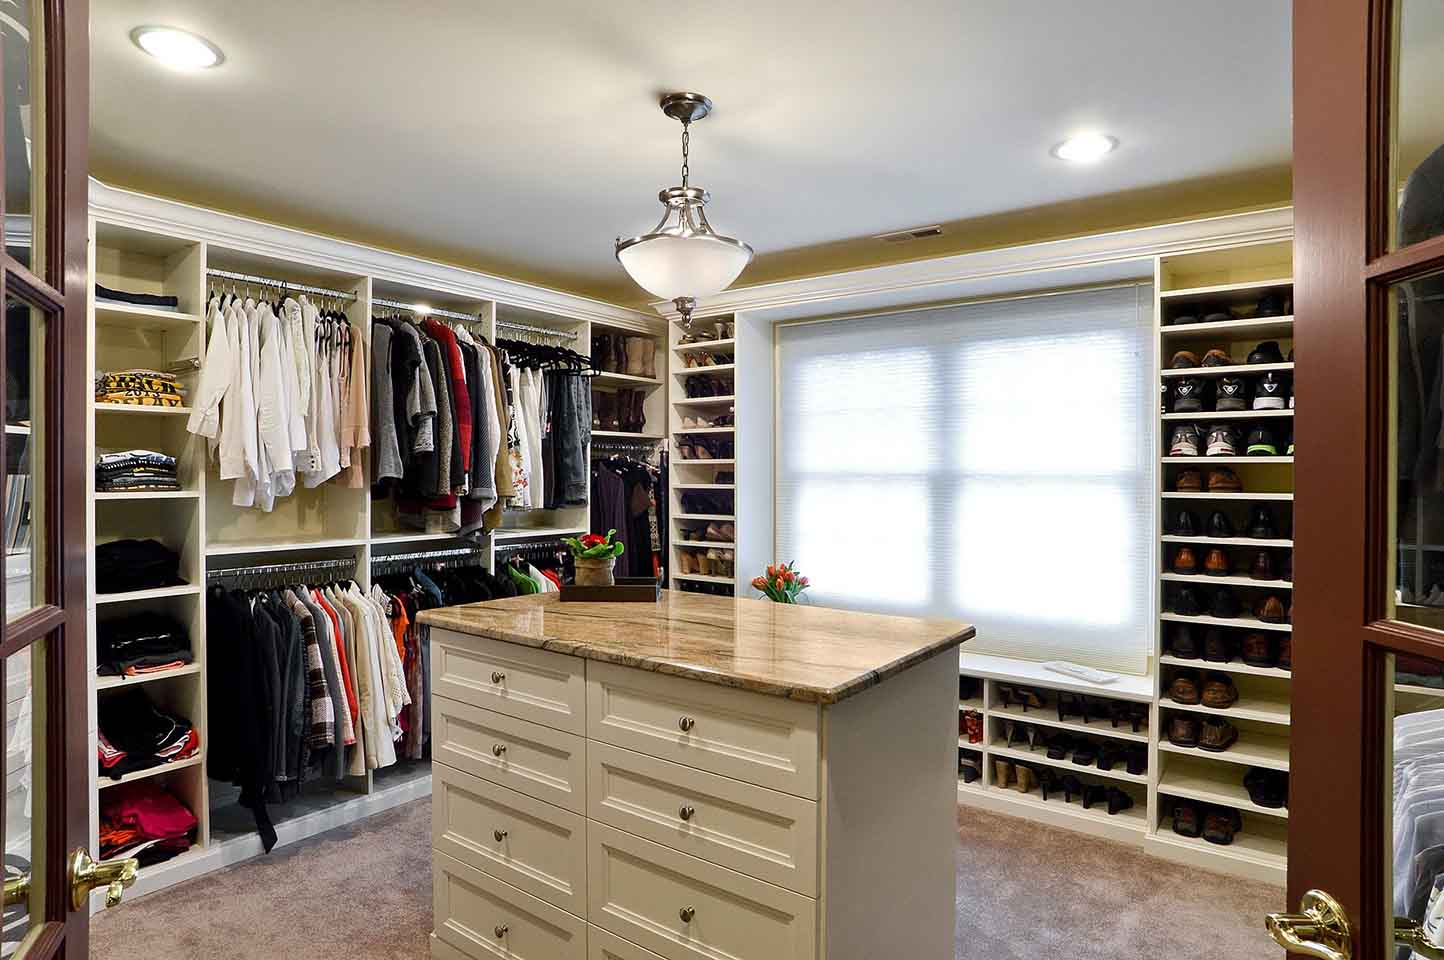 Walk-in closet with wardrobe neatly managed and organized